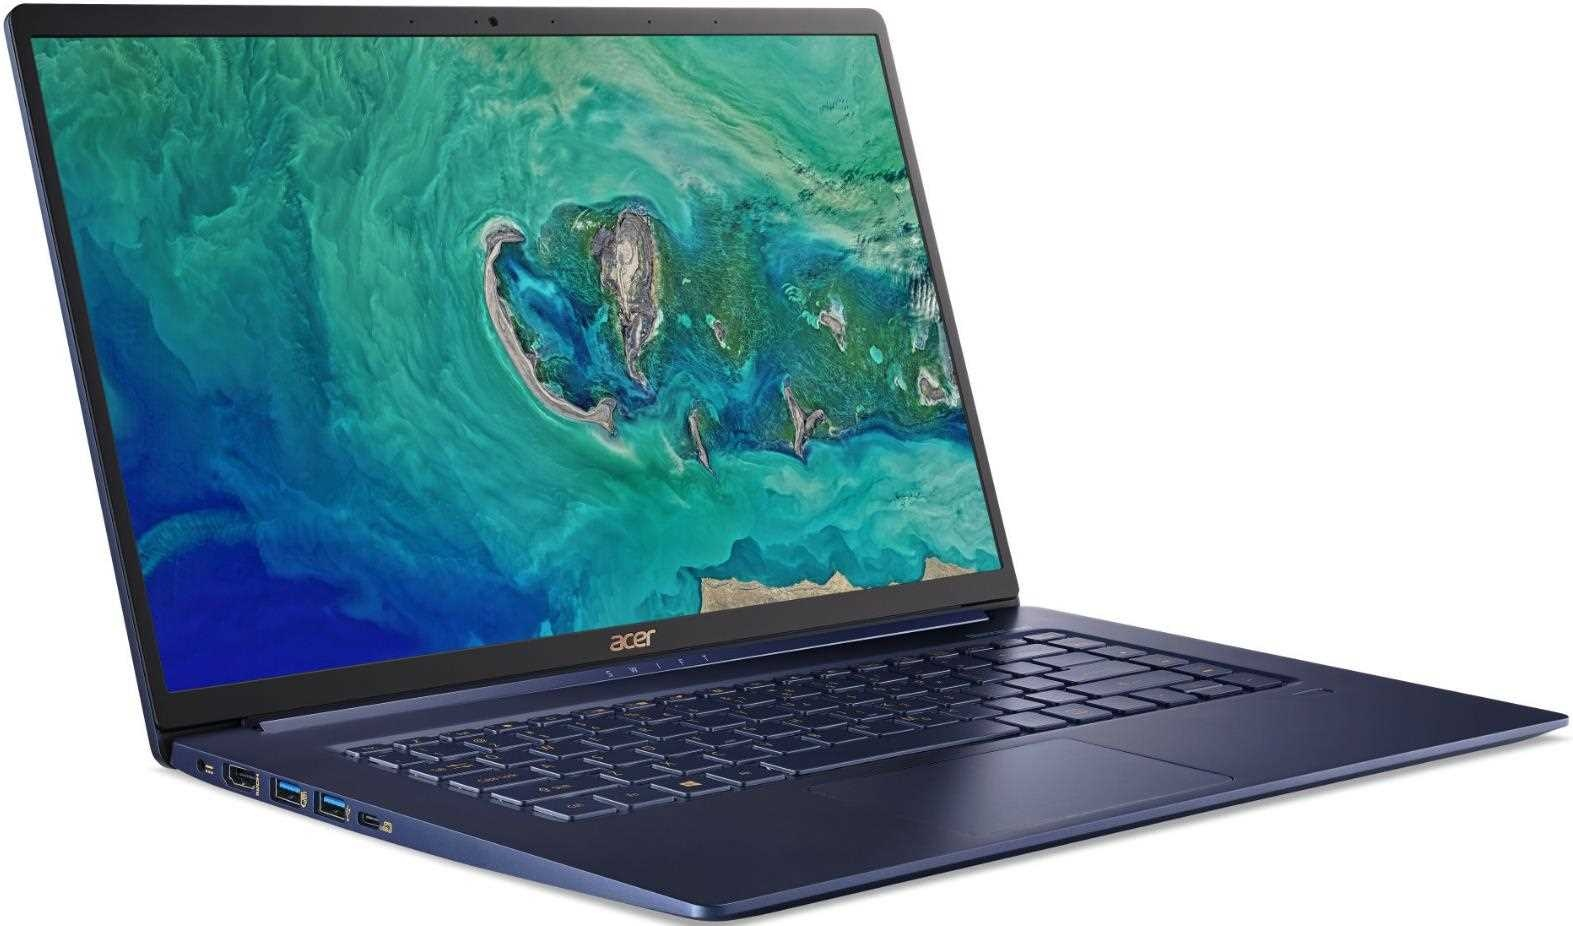 """ACER NTB Swift 5 Pro (SF515-51T-50XM) - i5-8265U@1.6GHz,15.6"""" FHD IPS in-cell touch,8GB,512SSD,backl,DP,W10P"""